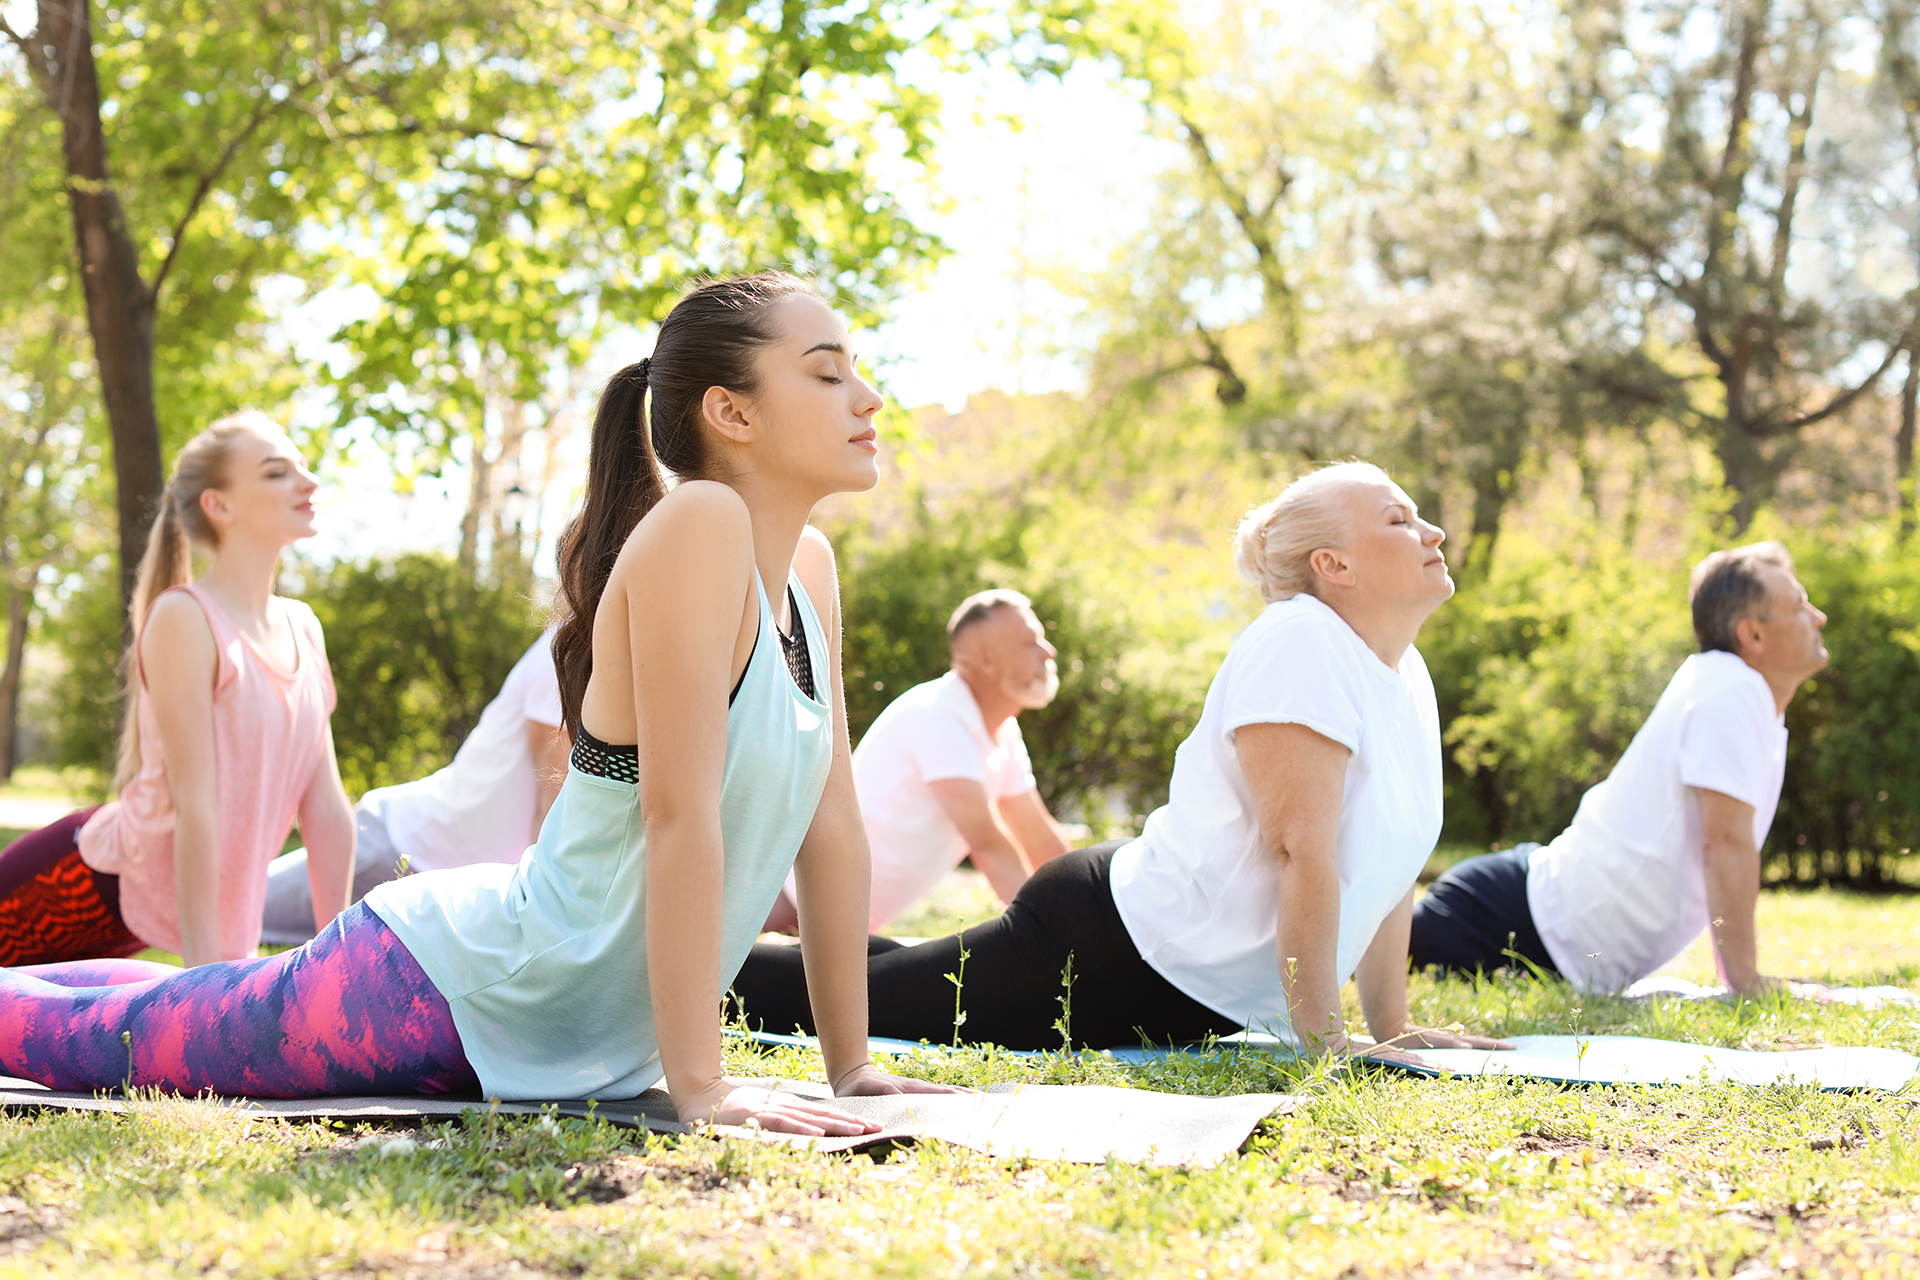 Group of people practicing yoga in park on sunny day